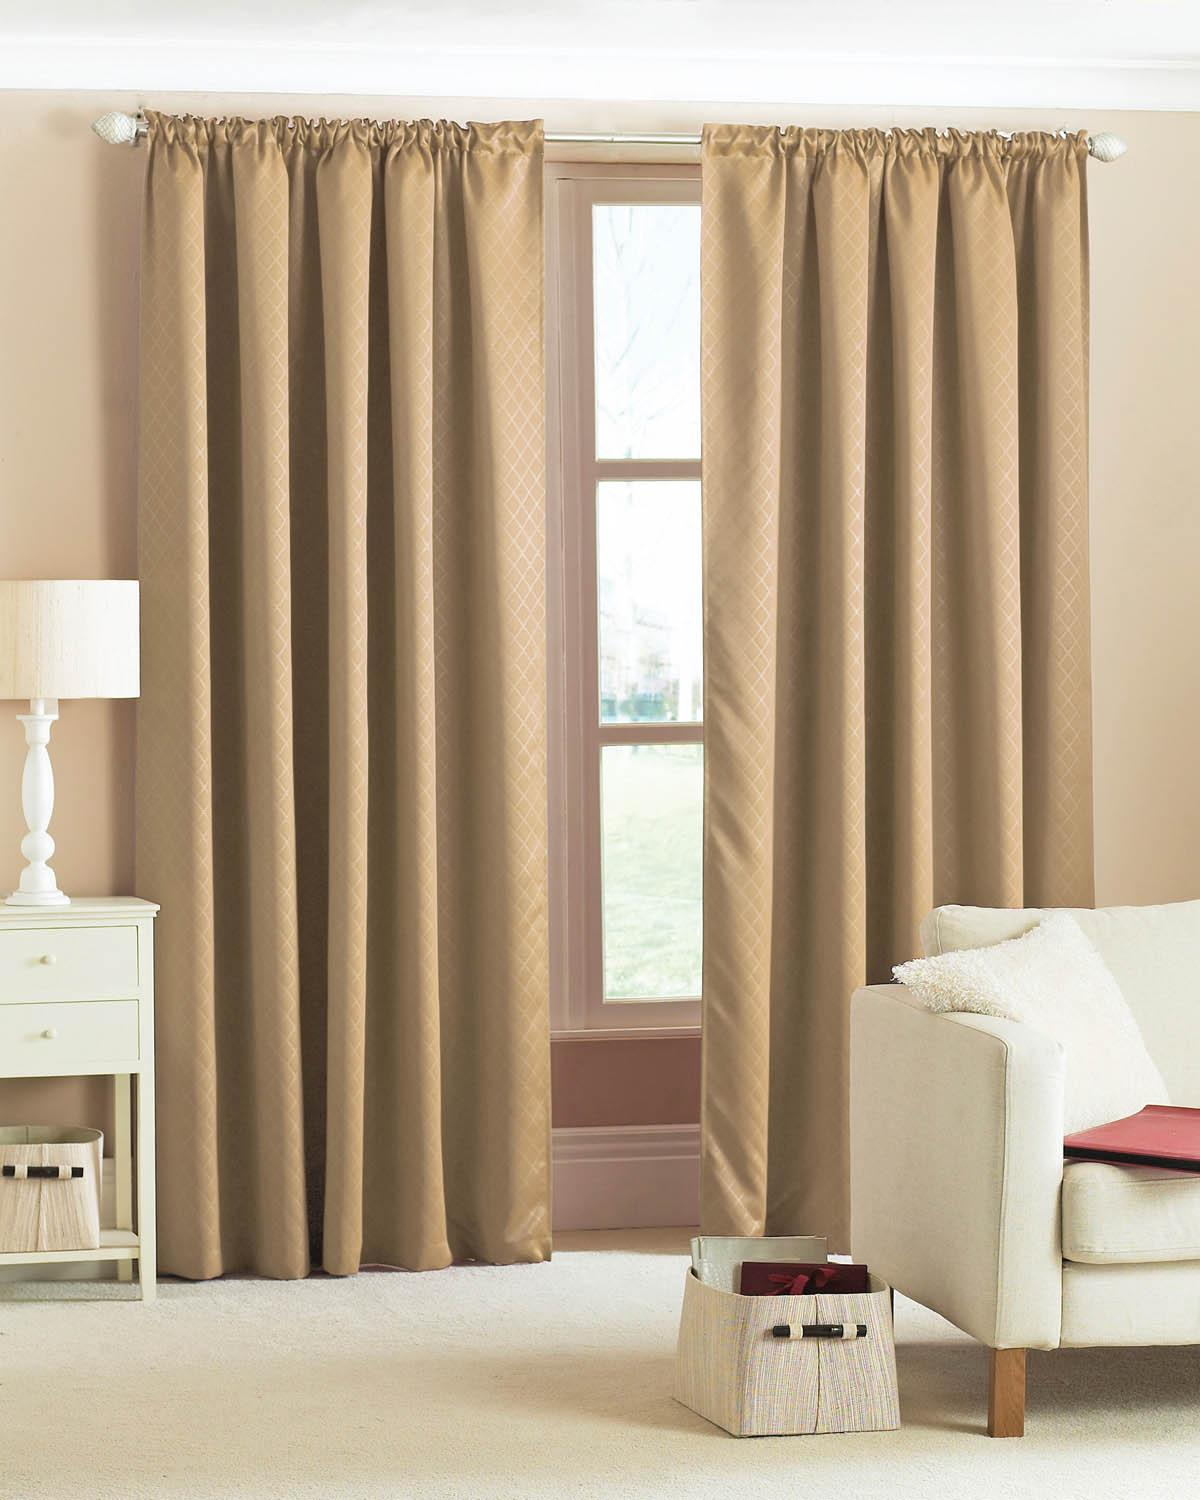 Diamond Woven Blackout Pencil Pleat Ready Made Curtains